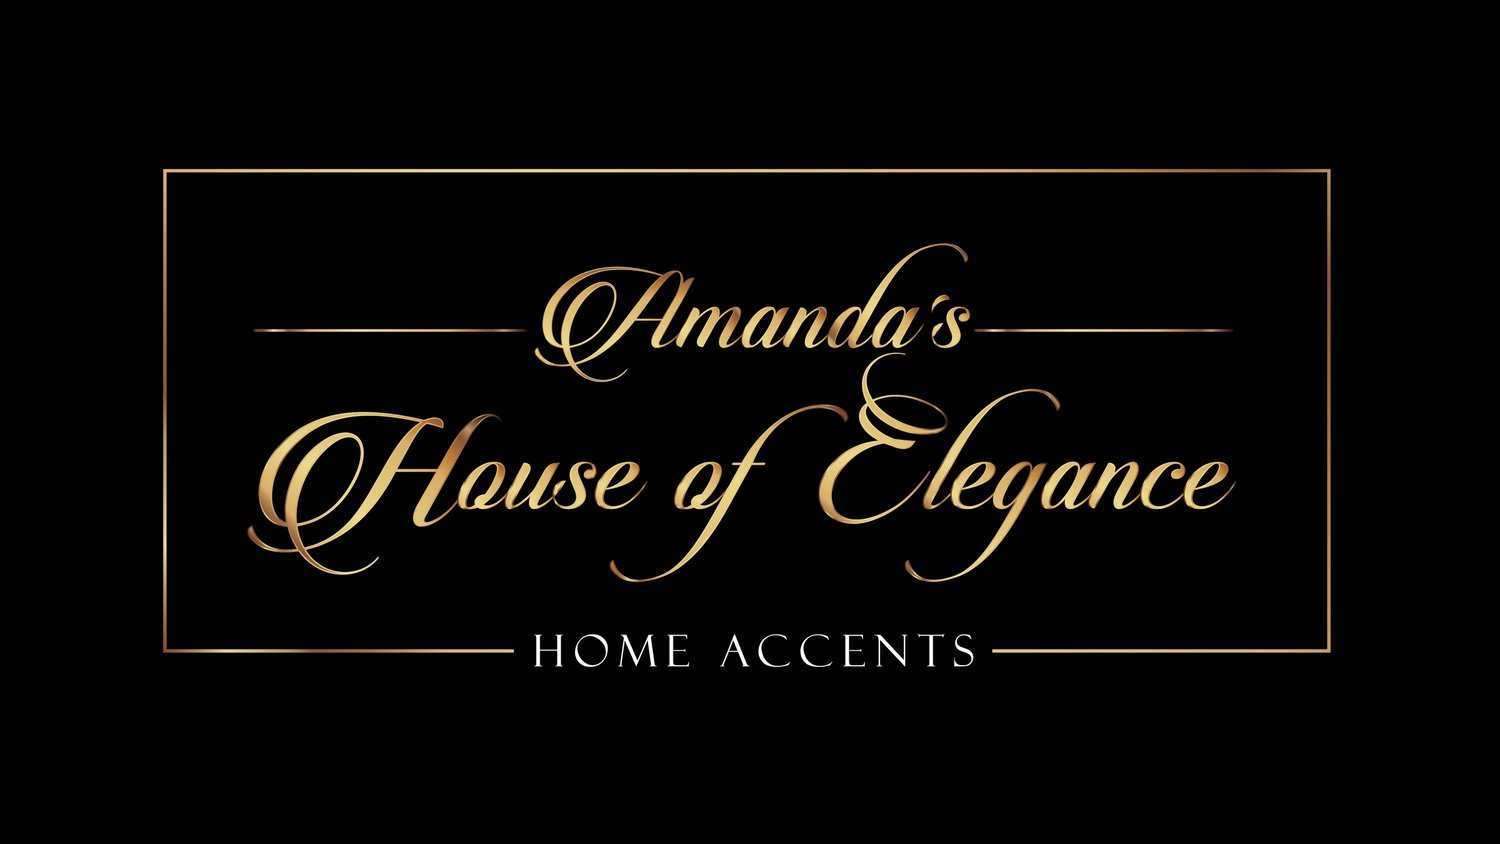 Amanda's House of Elegance